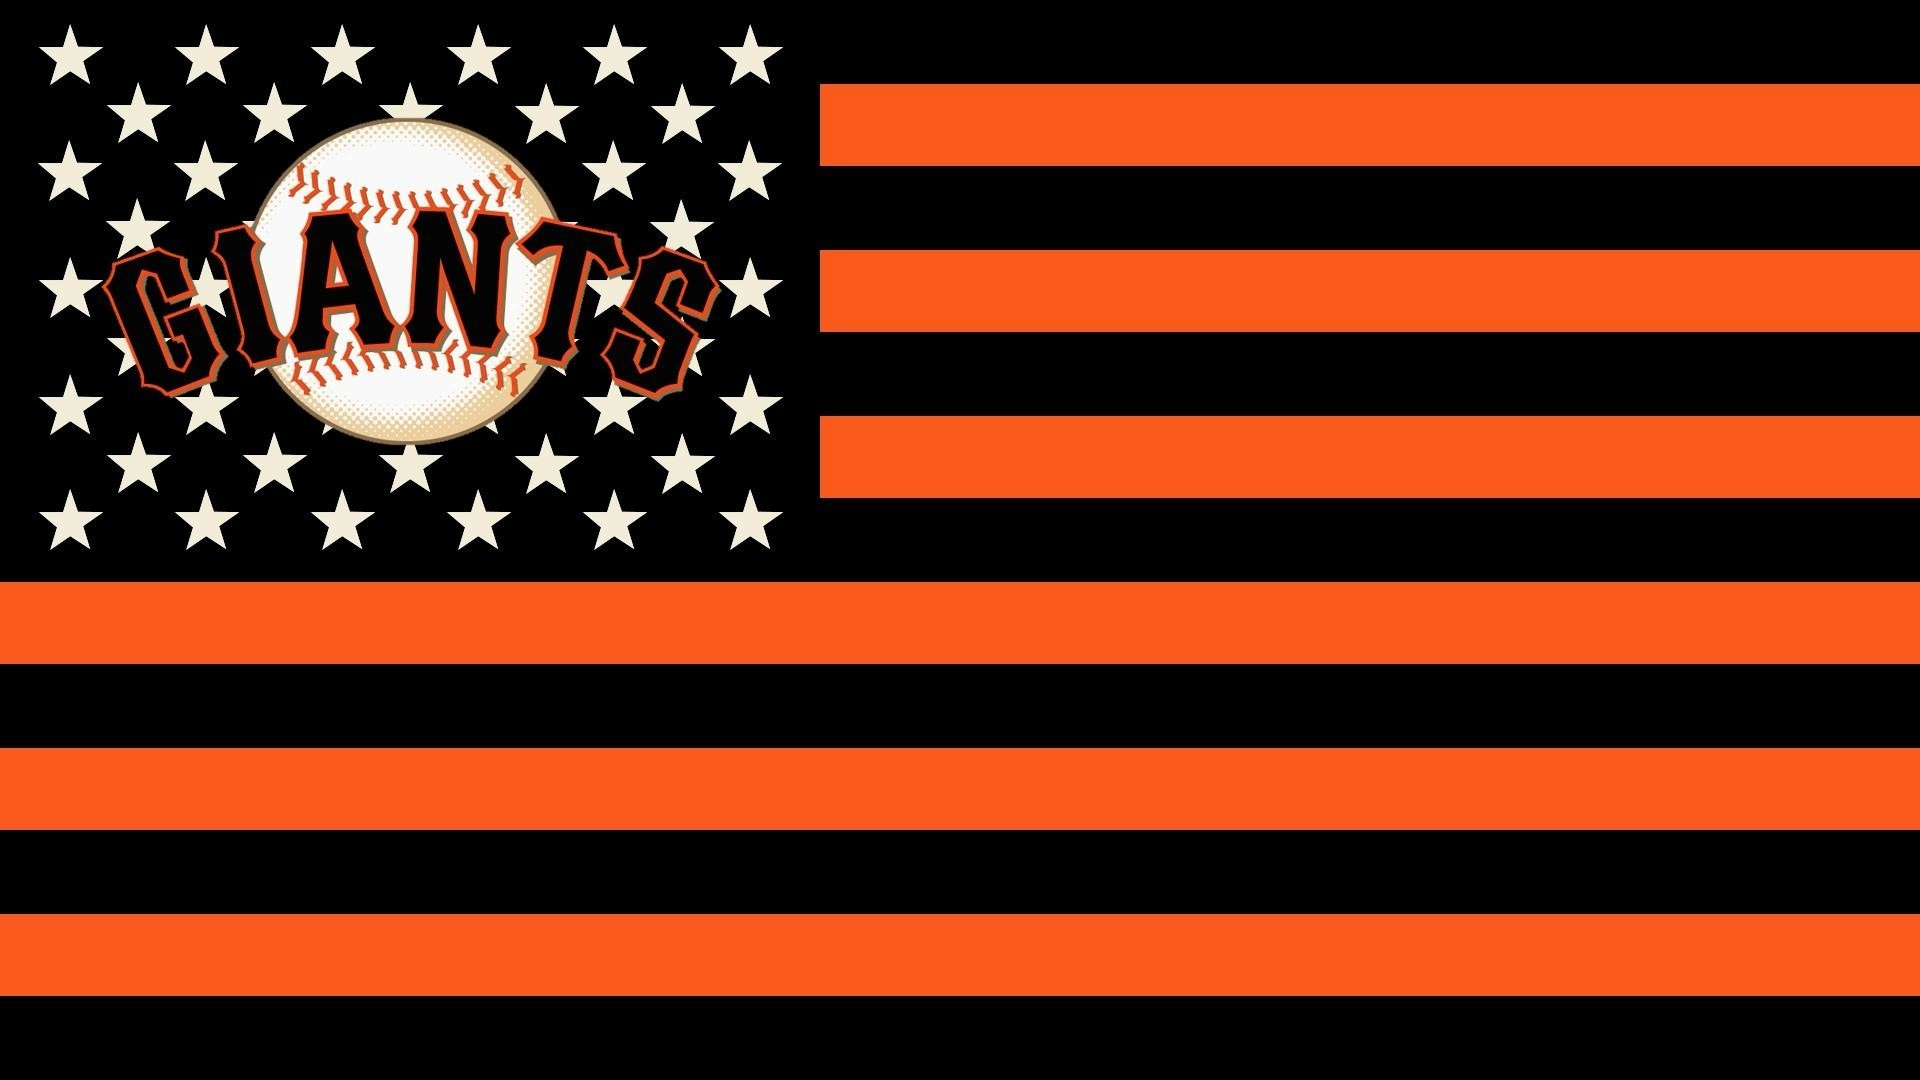 Sf Giants Iphone Wallpaper San Francisco Giants Wallpapers Hd Backgrounds Images